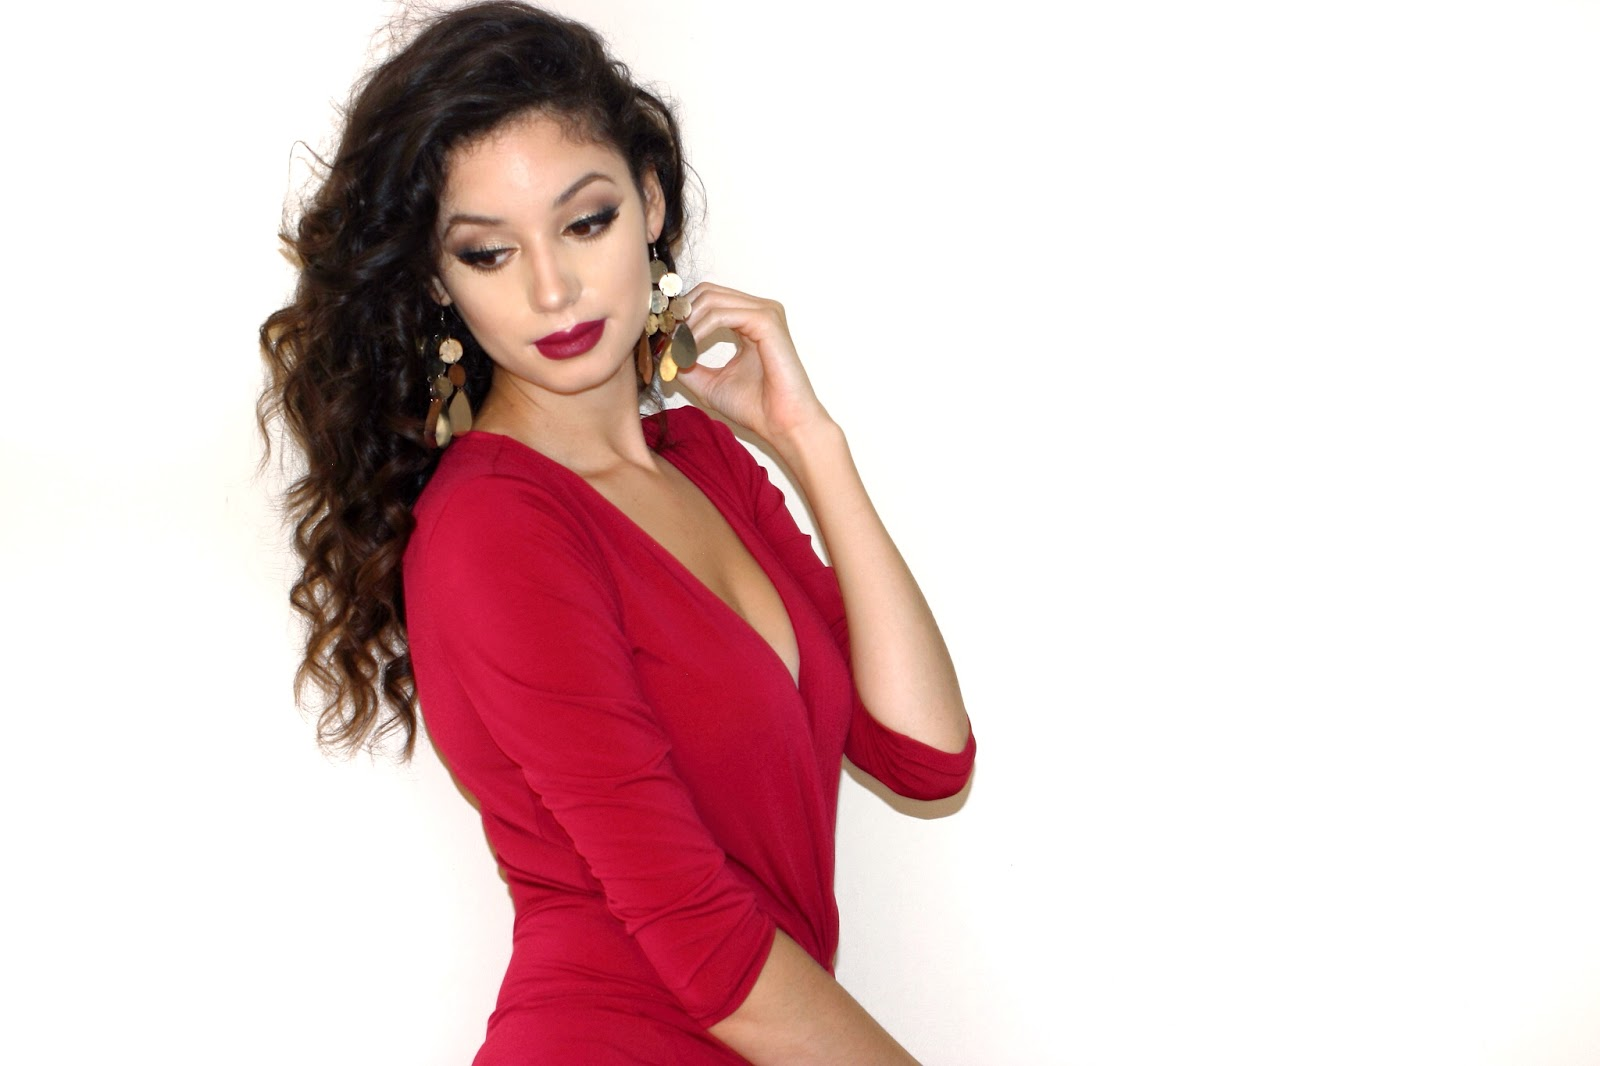 anasofiachic, fashion blogger, british blogger, makeup blogger, beauty blogger, lifestyle blogger, vestry, review, etailpr, red dress, review, girl in red, gold earrings, smokey eye, curly hair, big hair, voluminous hair, bodycon dress, assymetric dress